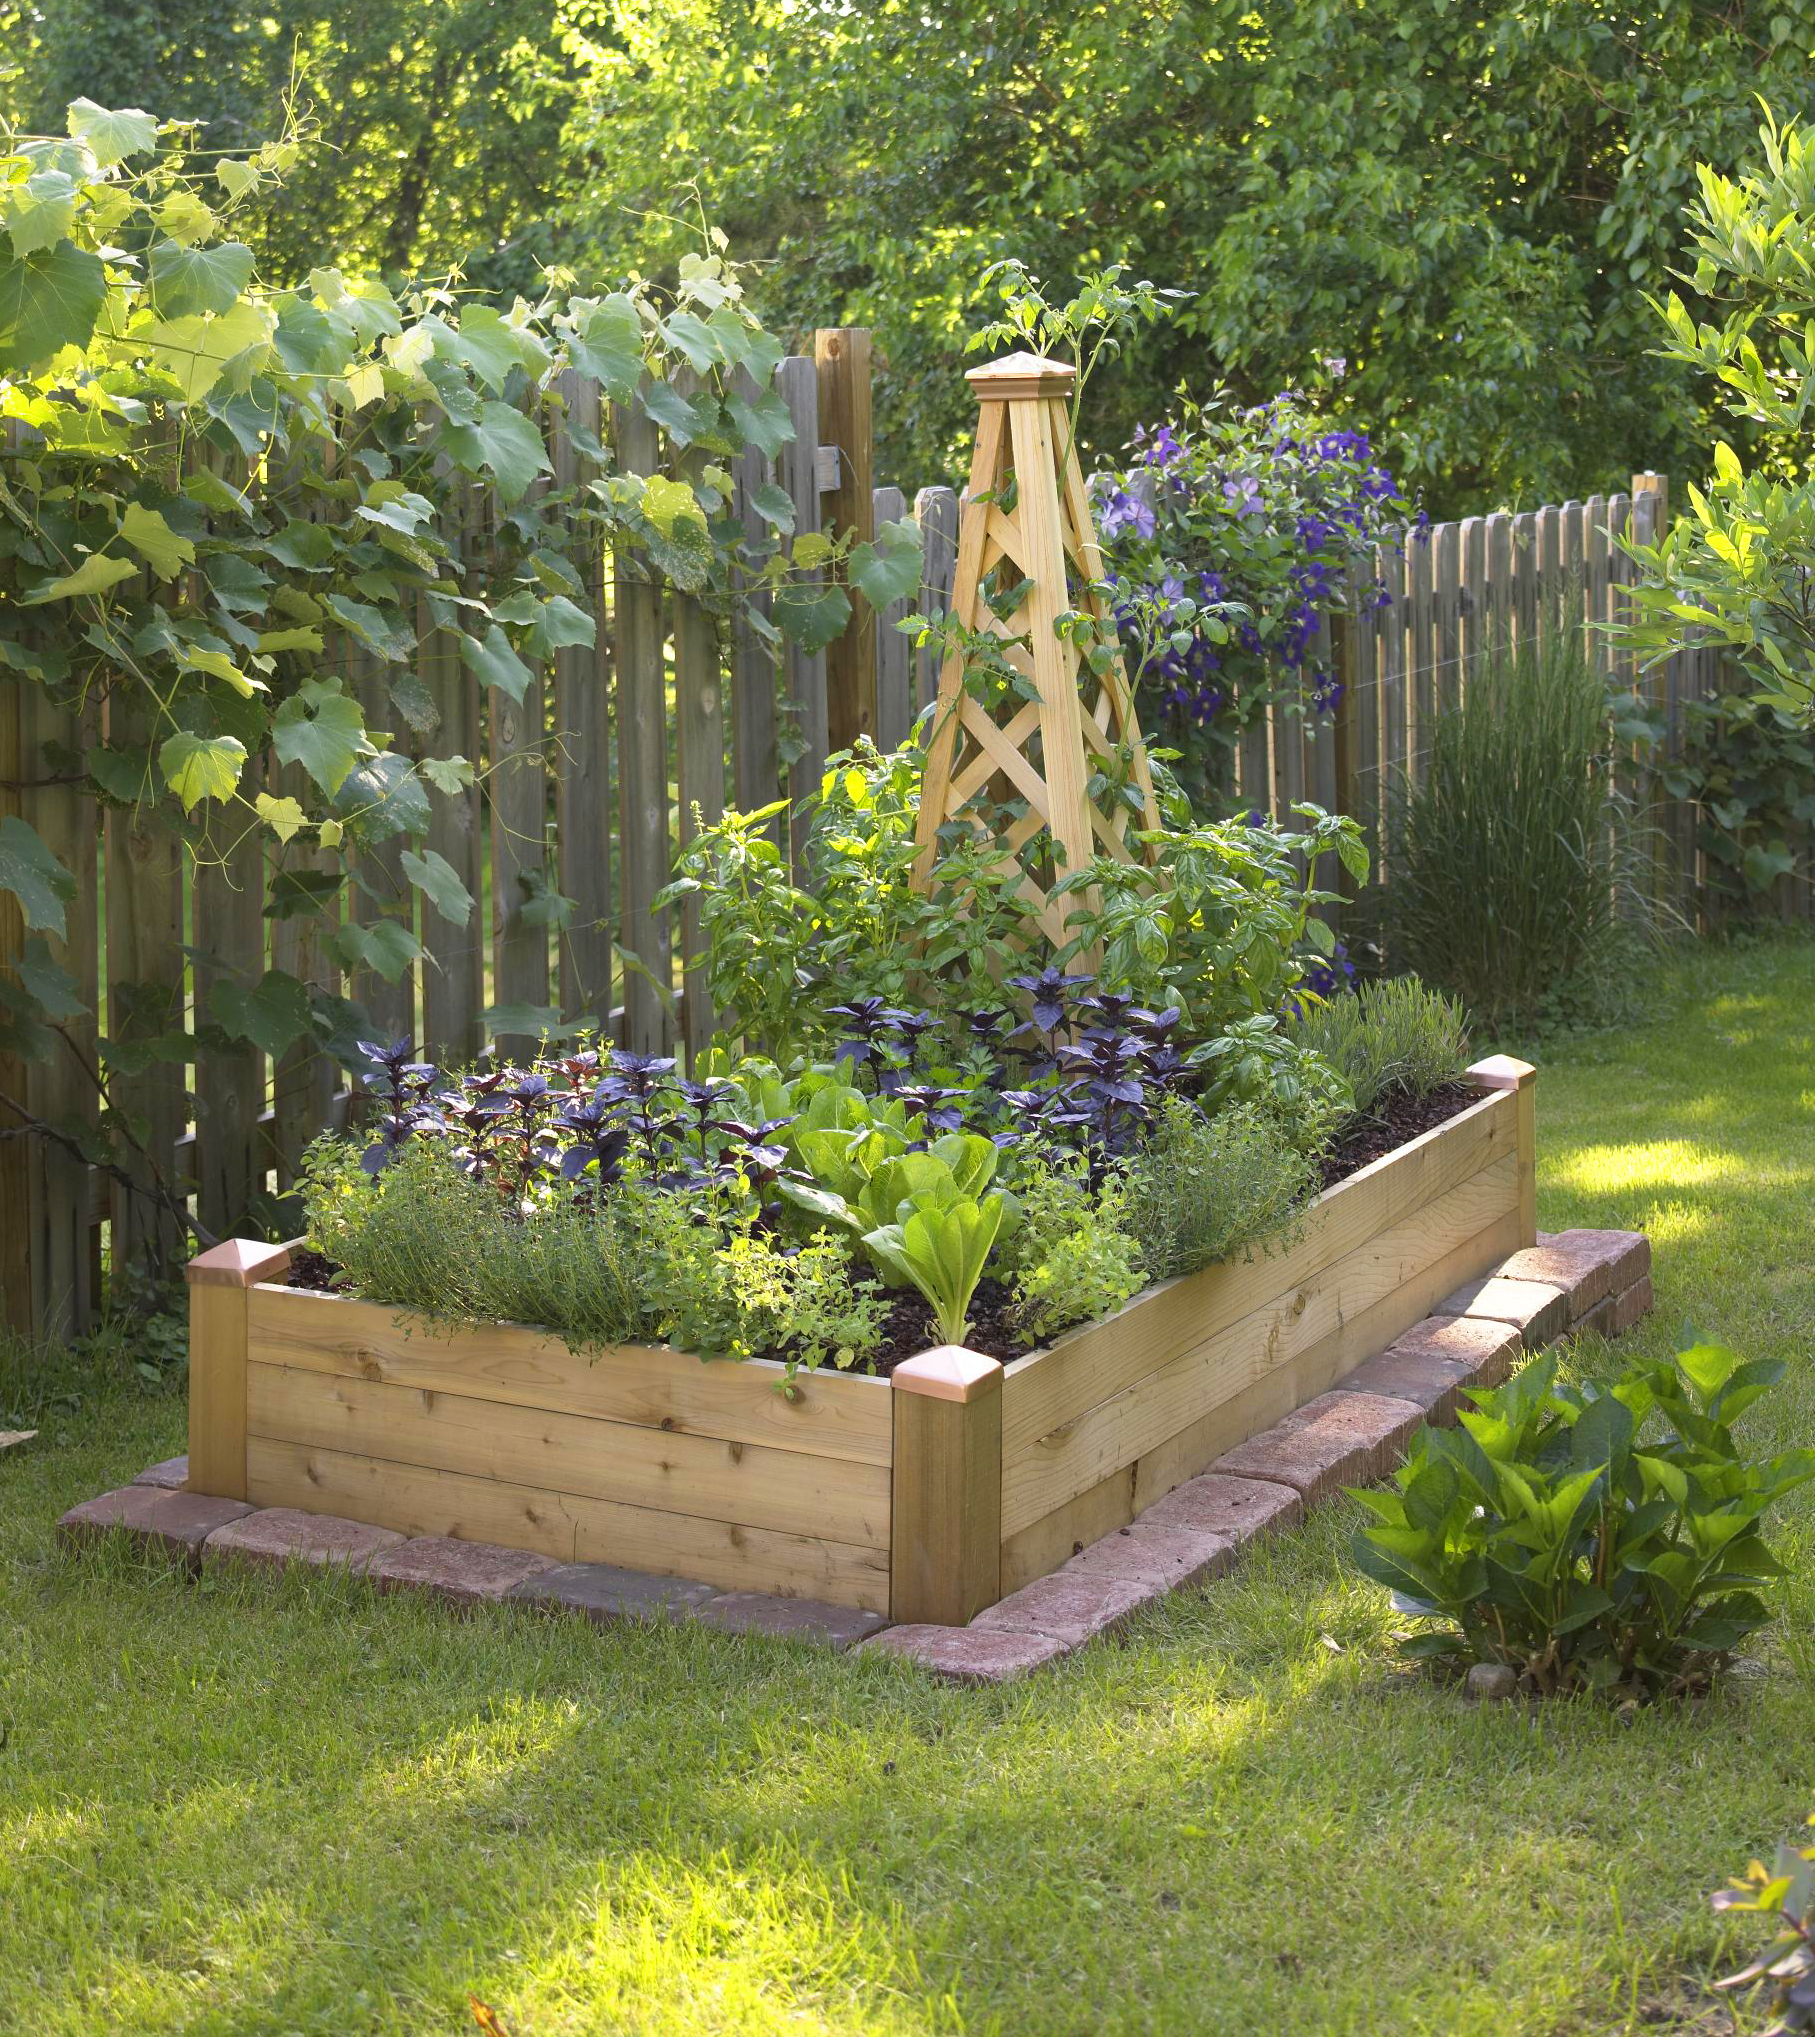 Plant Bed Small Space Gardening Build A Tiny Raised Bed Midwest